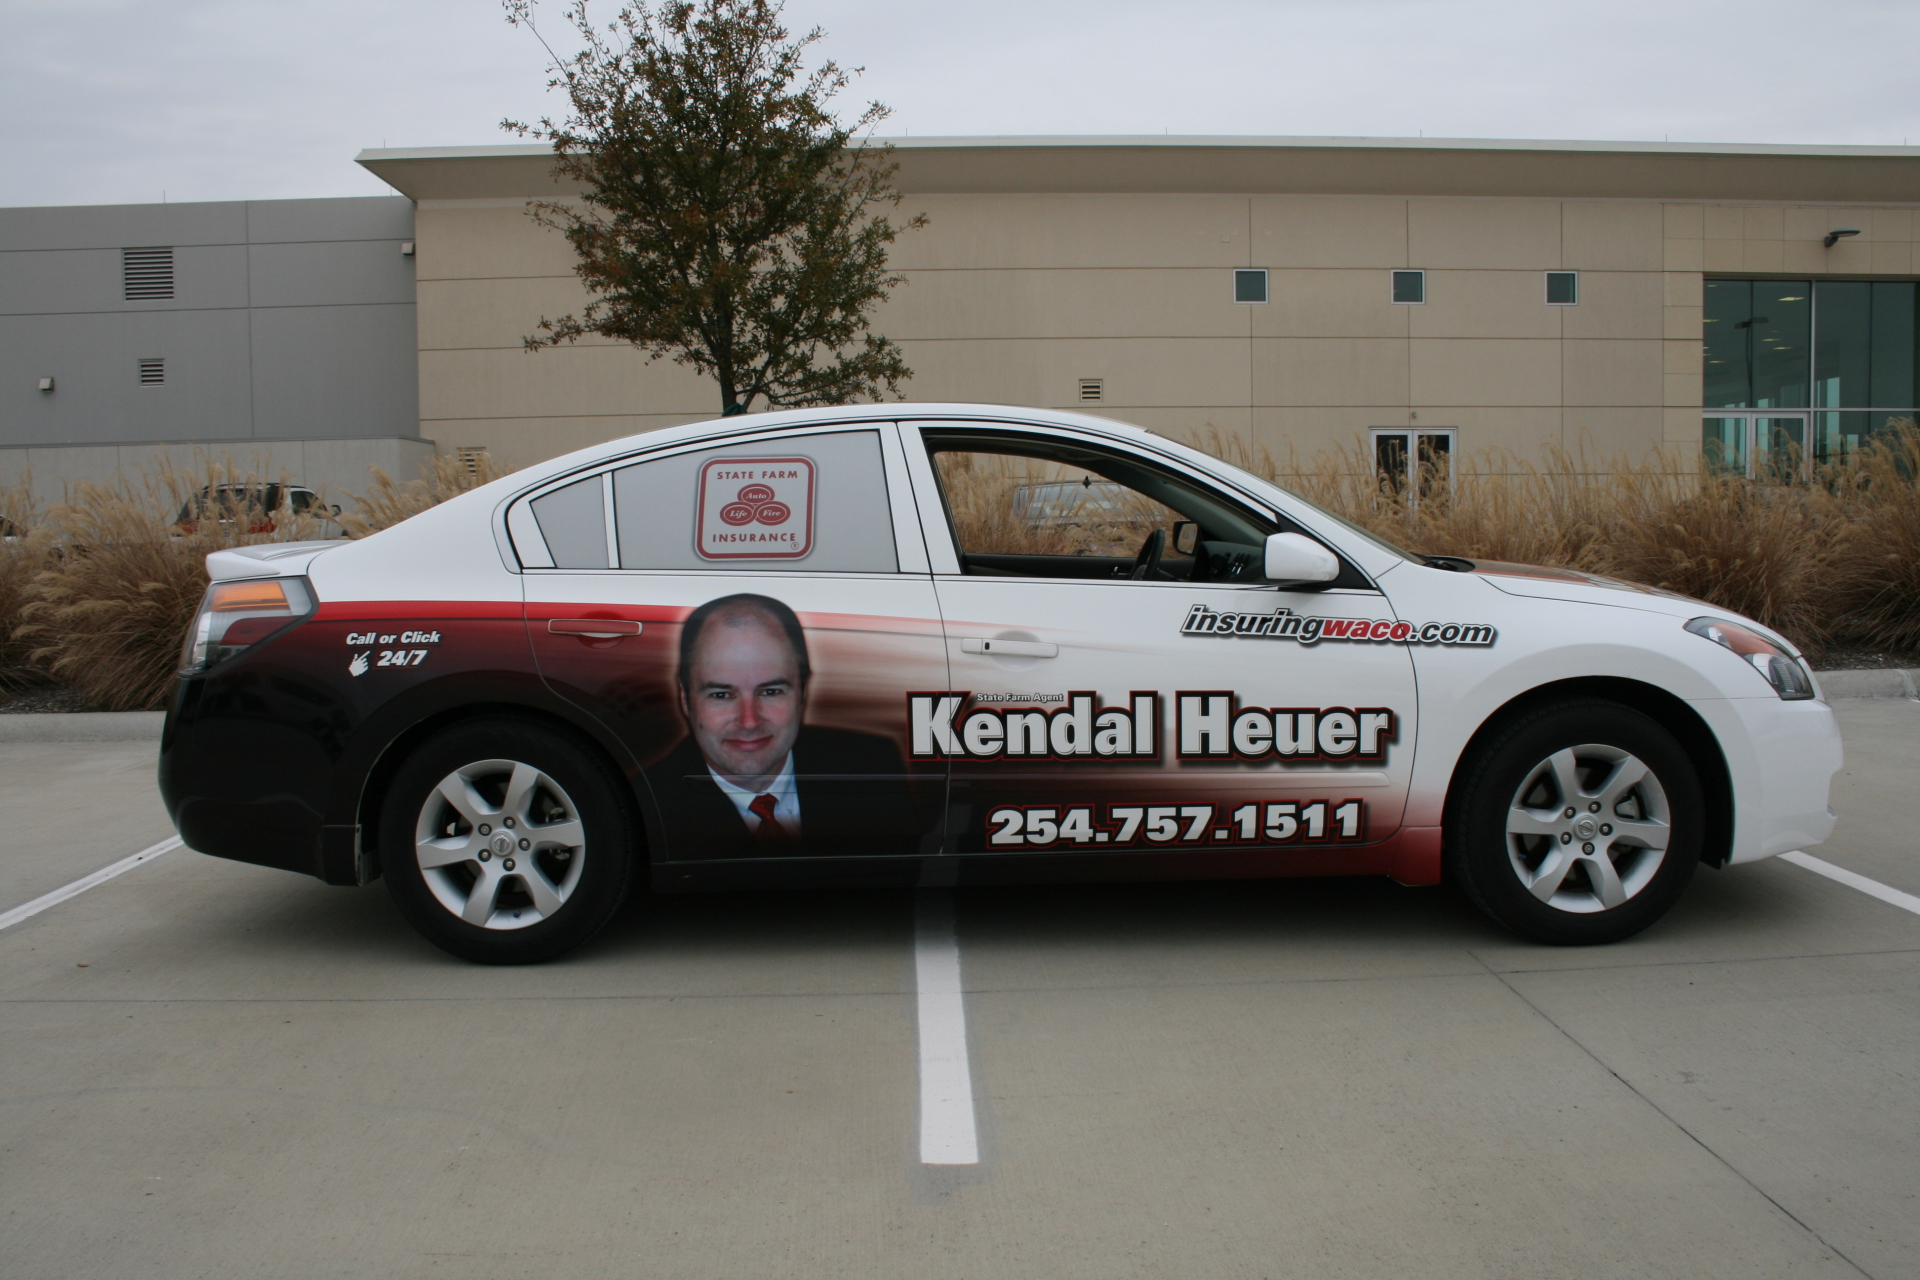 State Farm agent Kendal Heuer, vehicle wraps dallas tx, vehicle wraps waco, State Farm Denton, State Farm Argyle